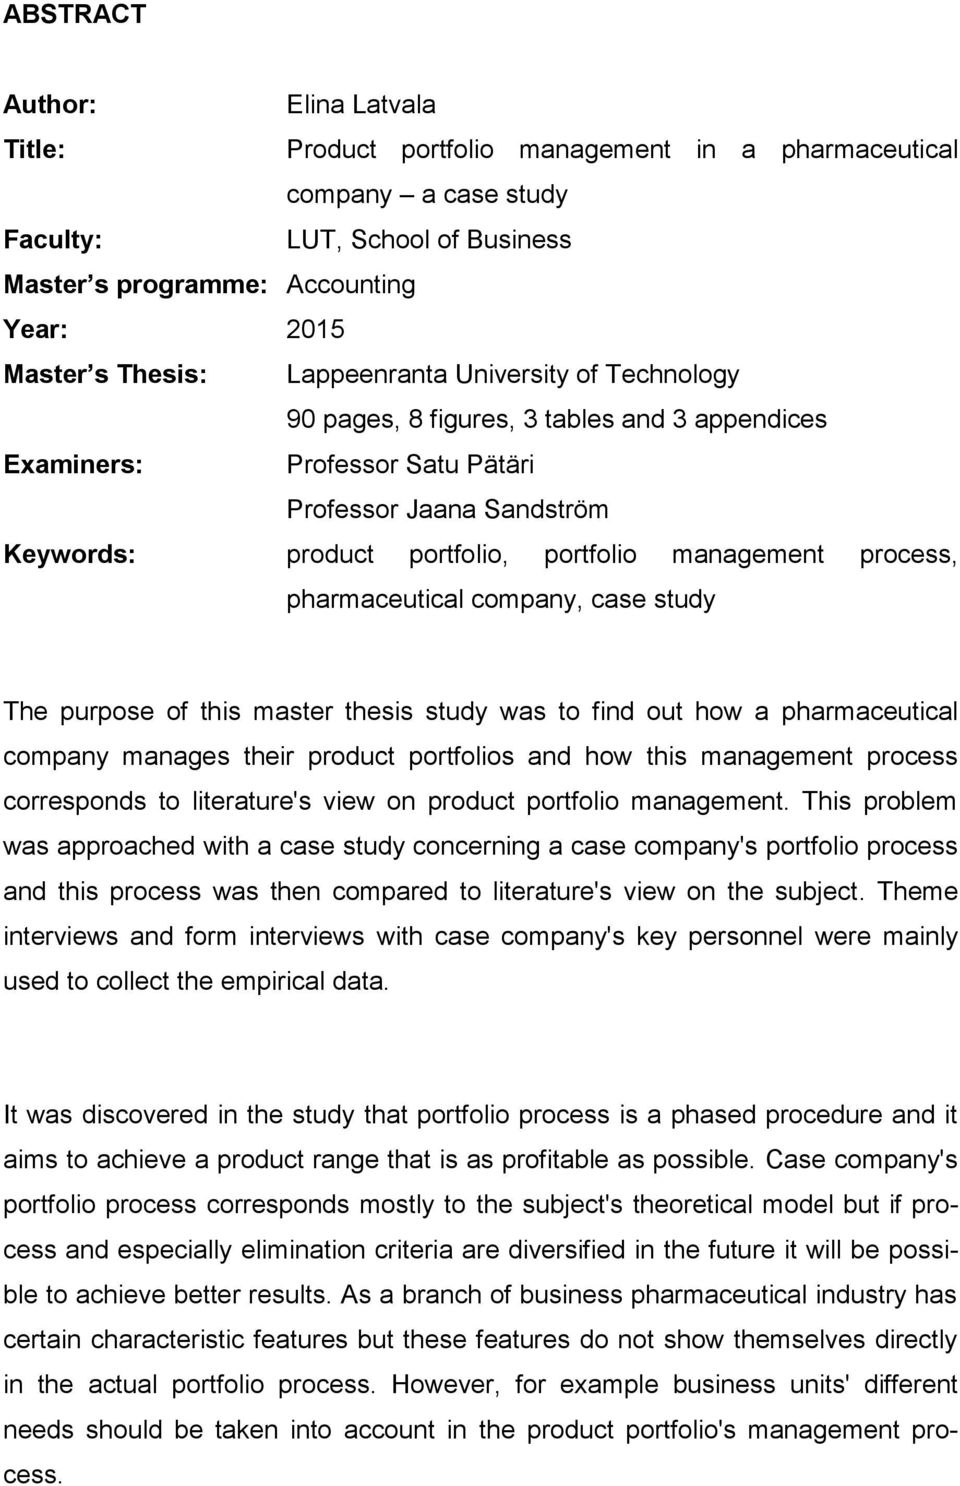 process, pharmaceutical company, case study The purpose of this master thesis study was to find out how a pharmaceutical company manages their product portfolios and how this management process